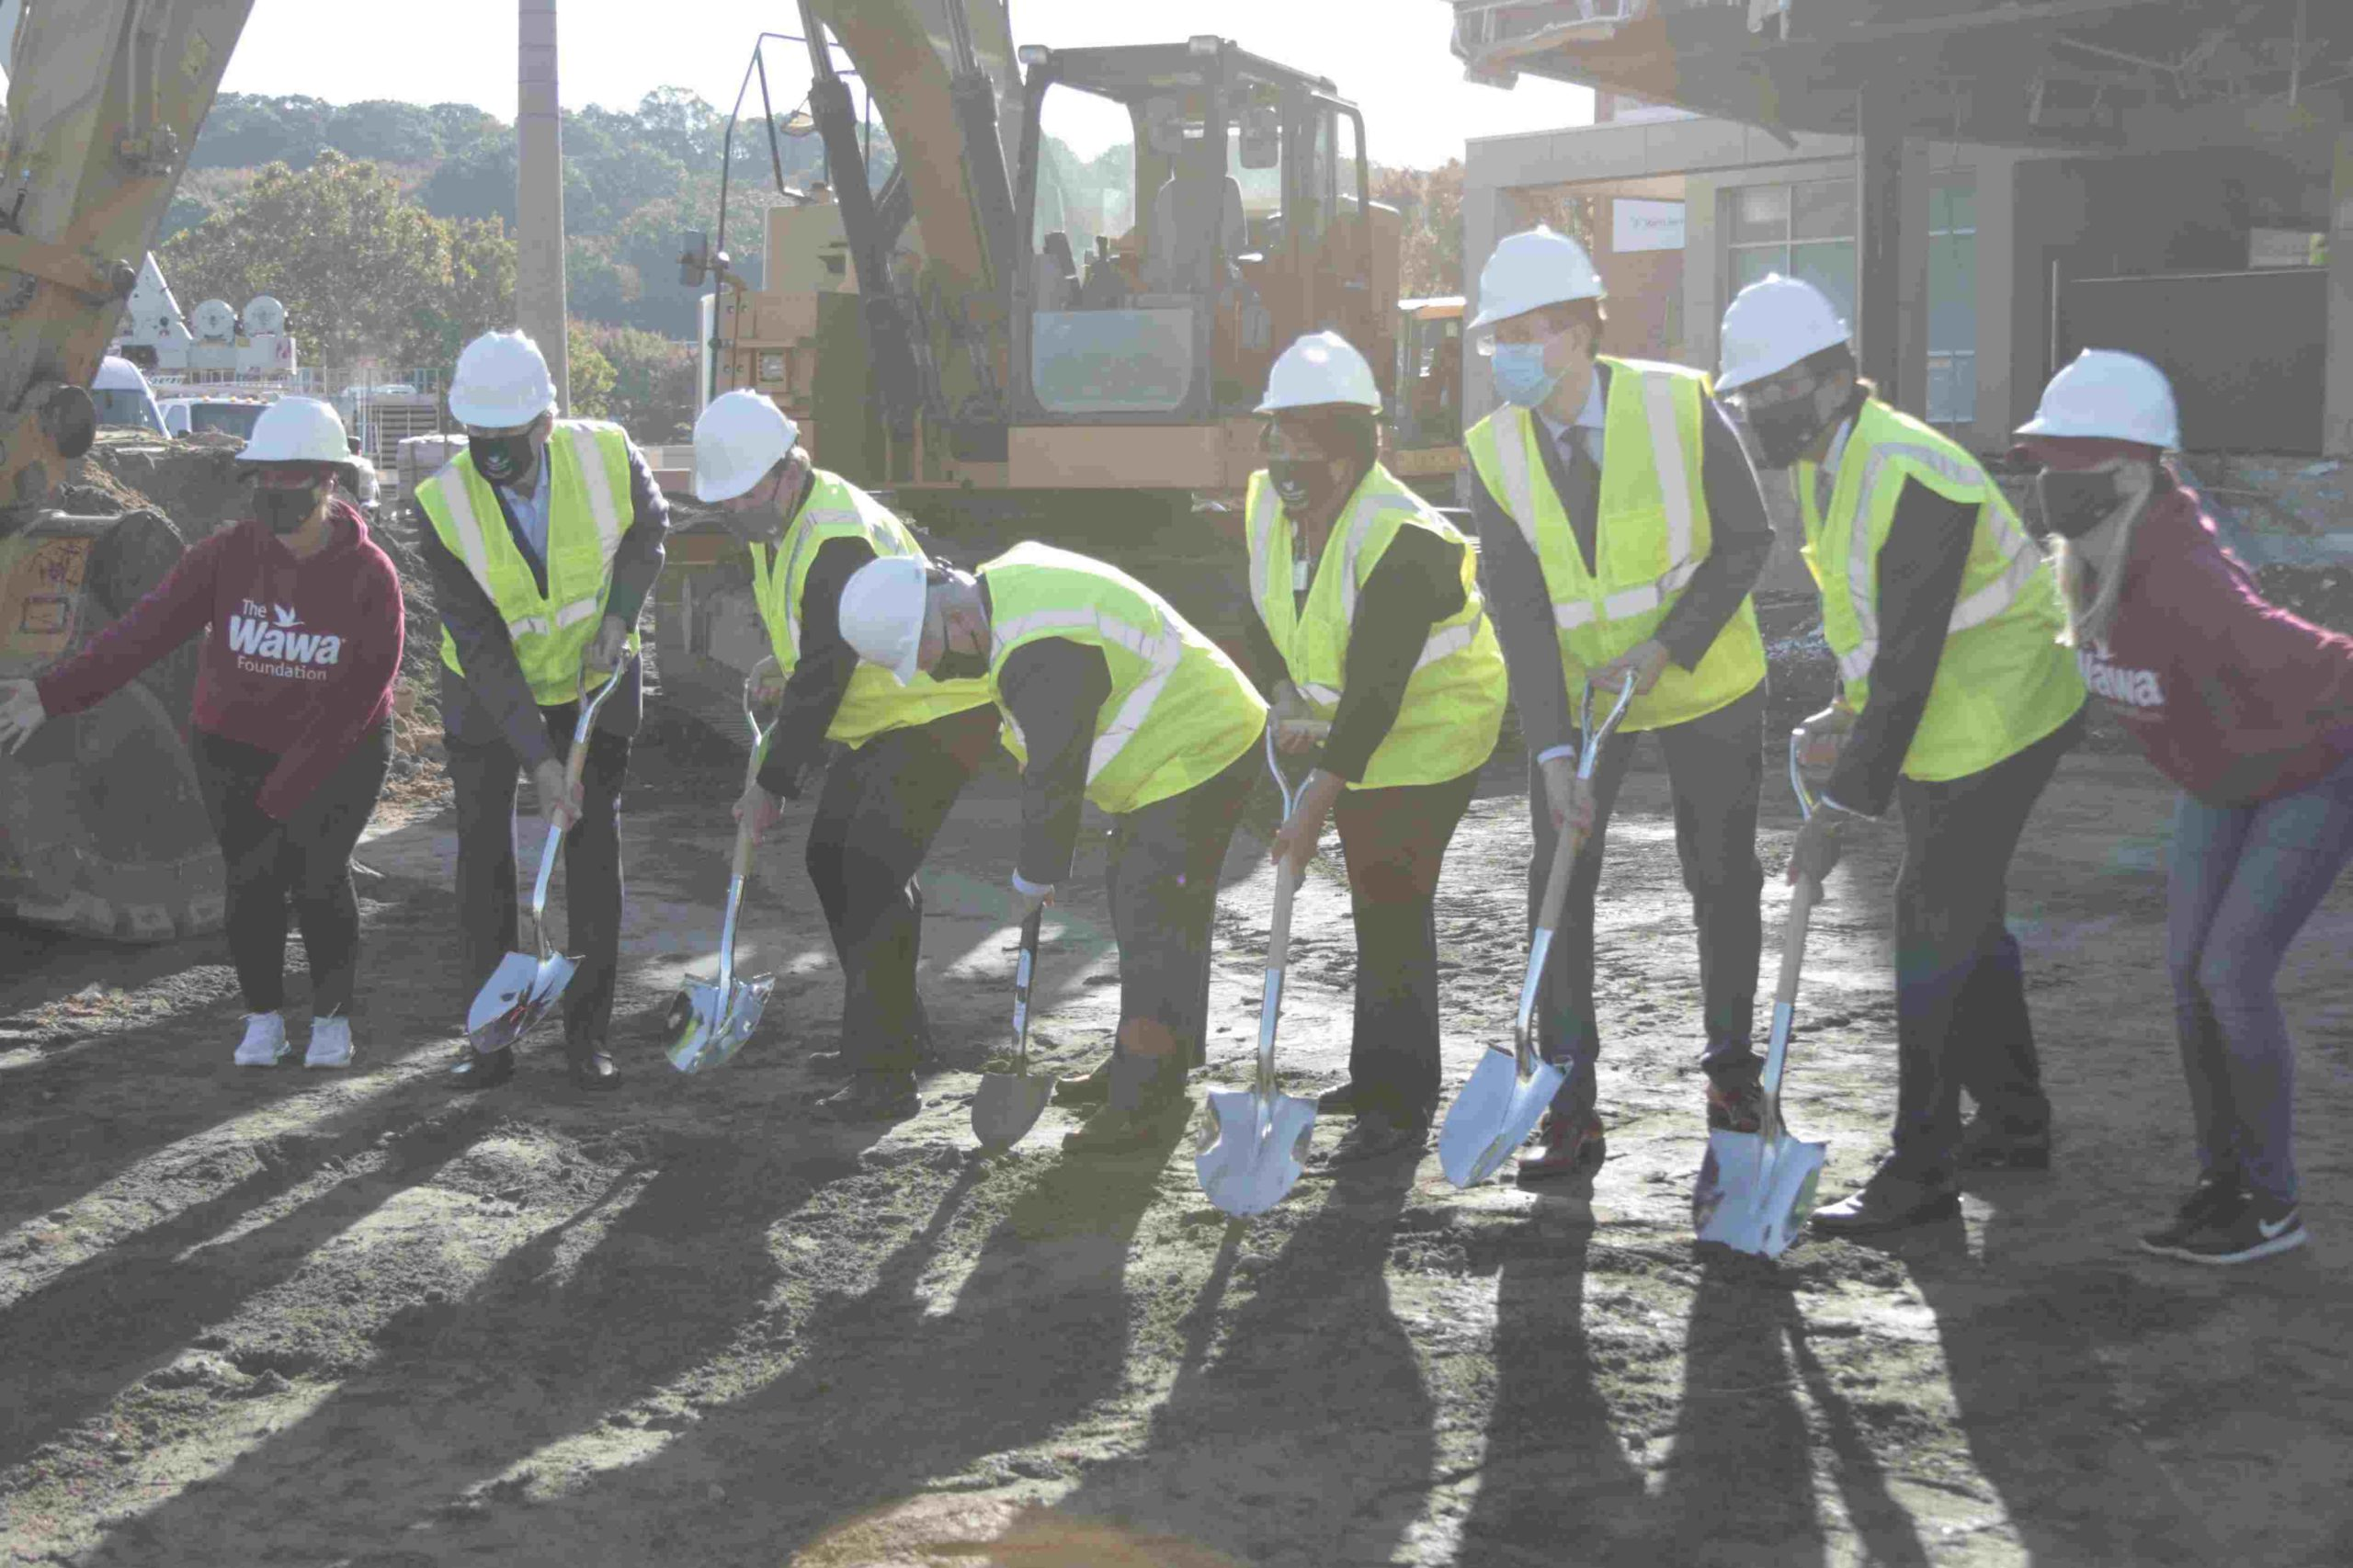 Riddle Hospital Modernization Project Gets Underway With Groundbreaking Thursday